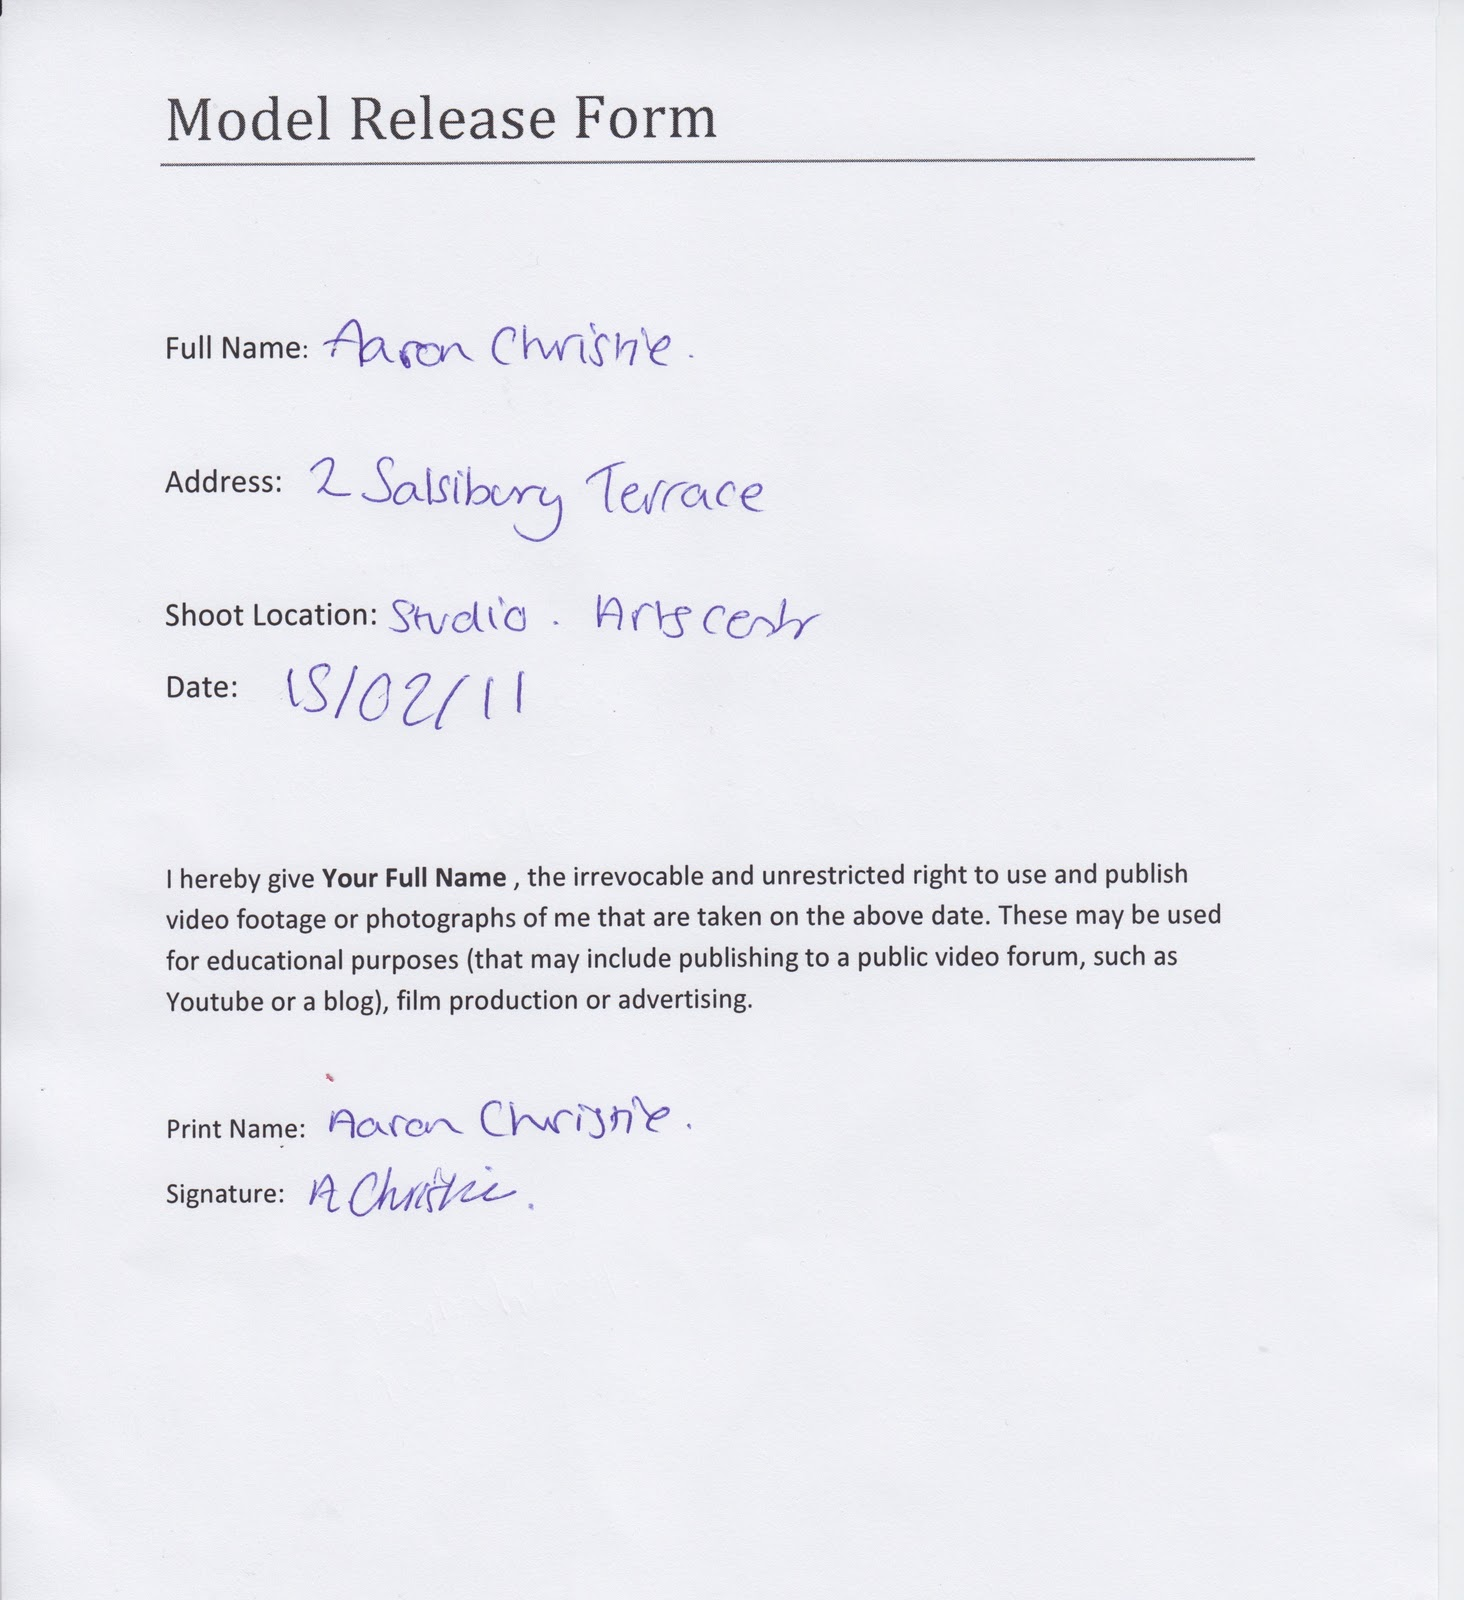 Model release forms model release form template slr lounge spiritdancerdesigns Choice Image